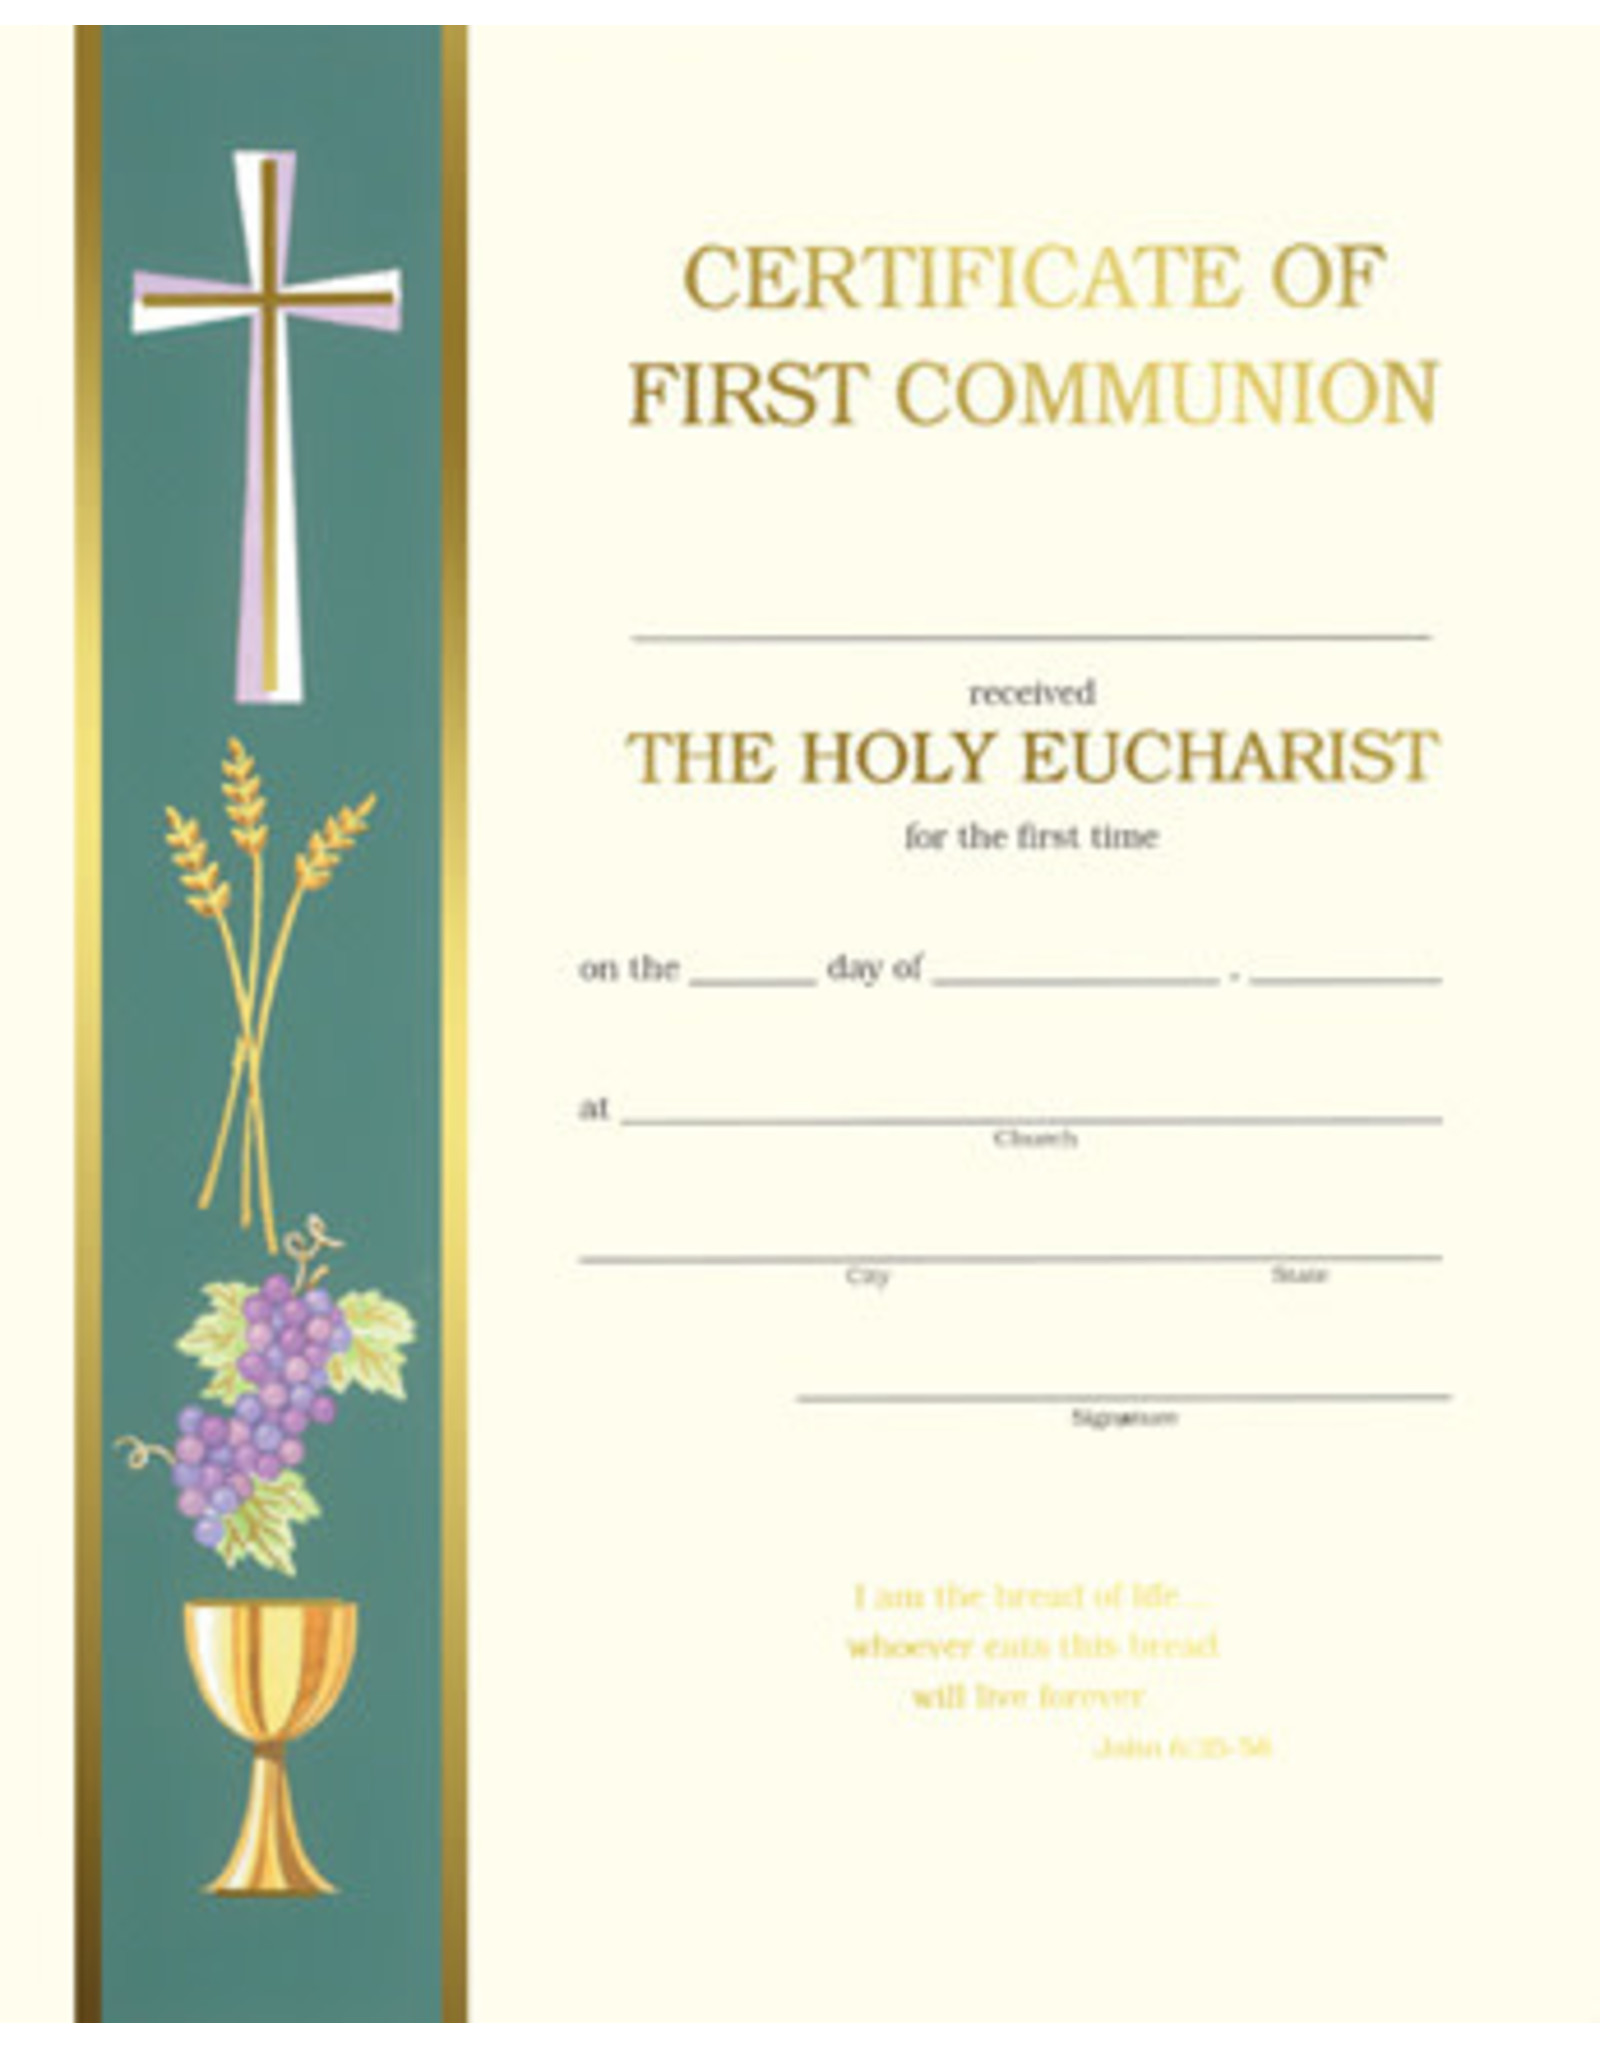 First Communion Certificate (50)